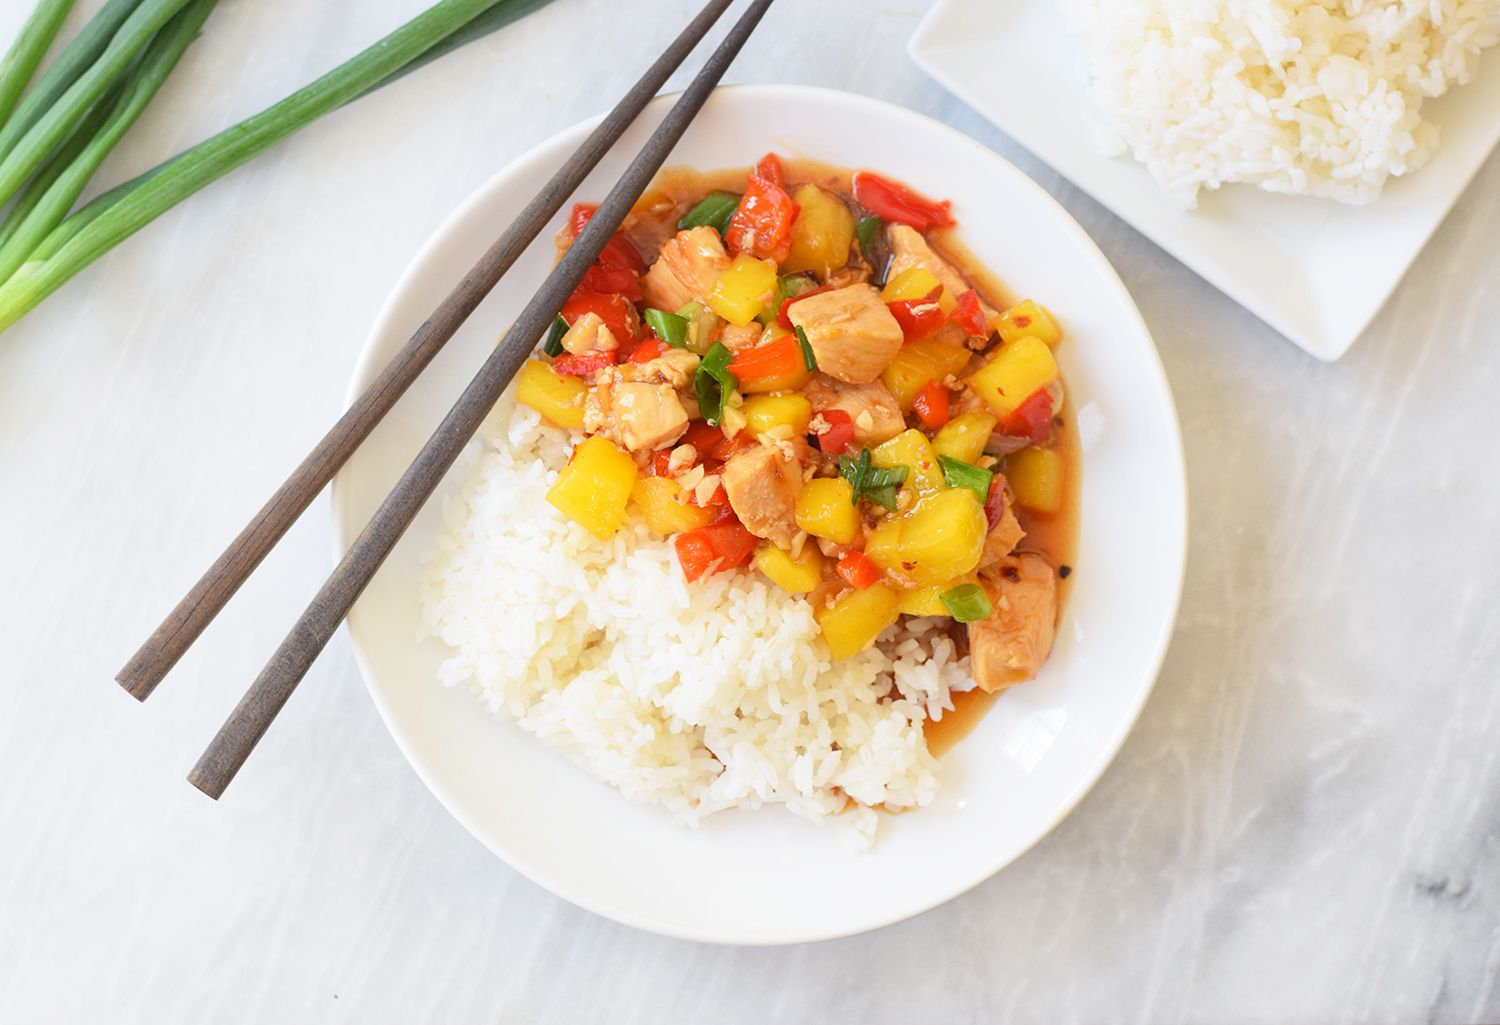 Pineapple chicken stir-fry with rice